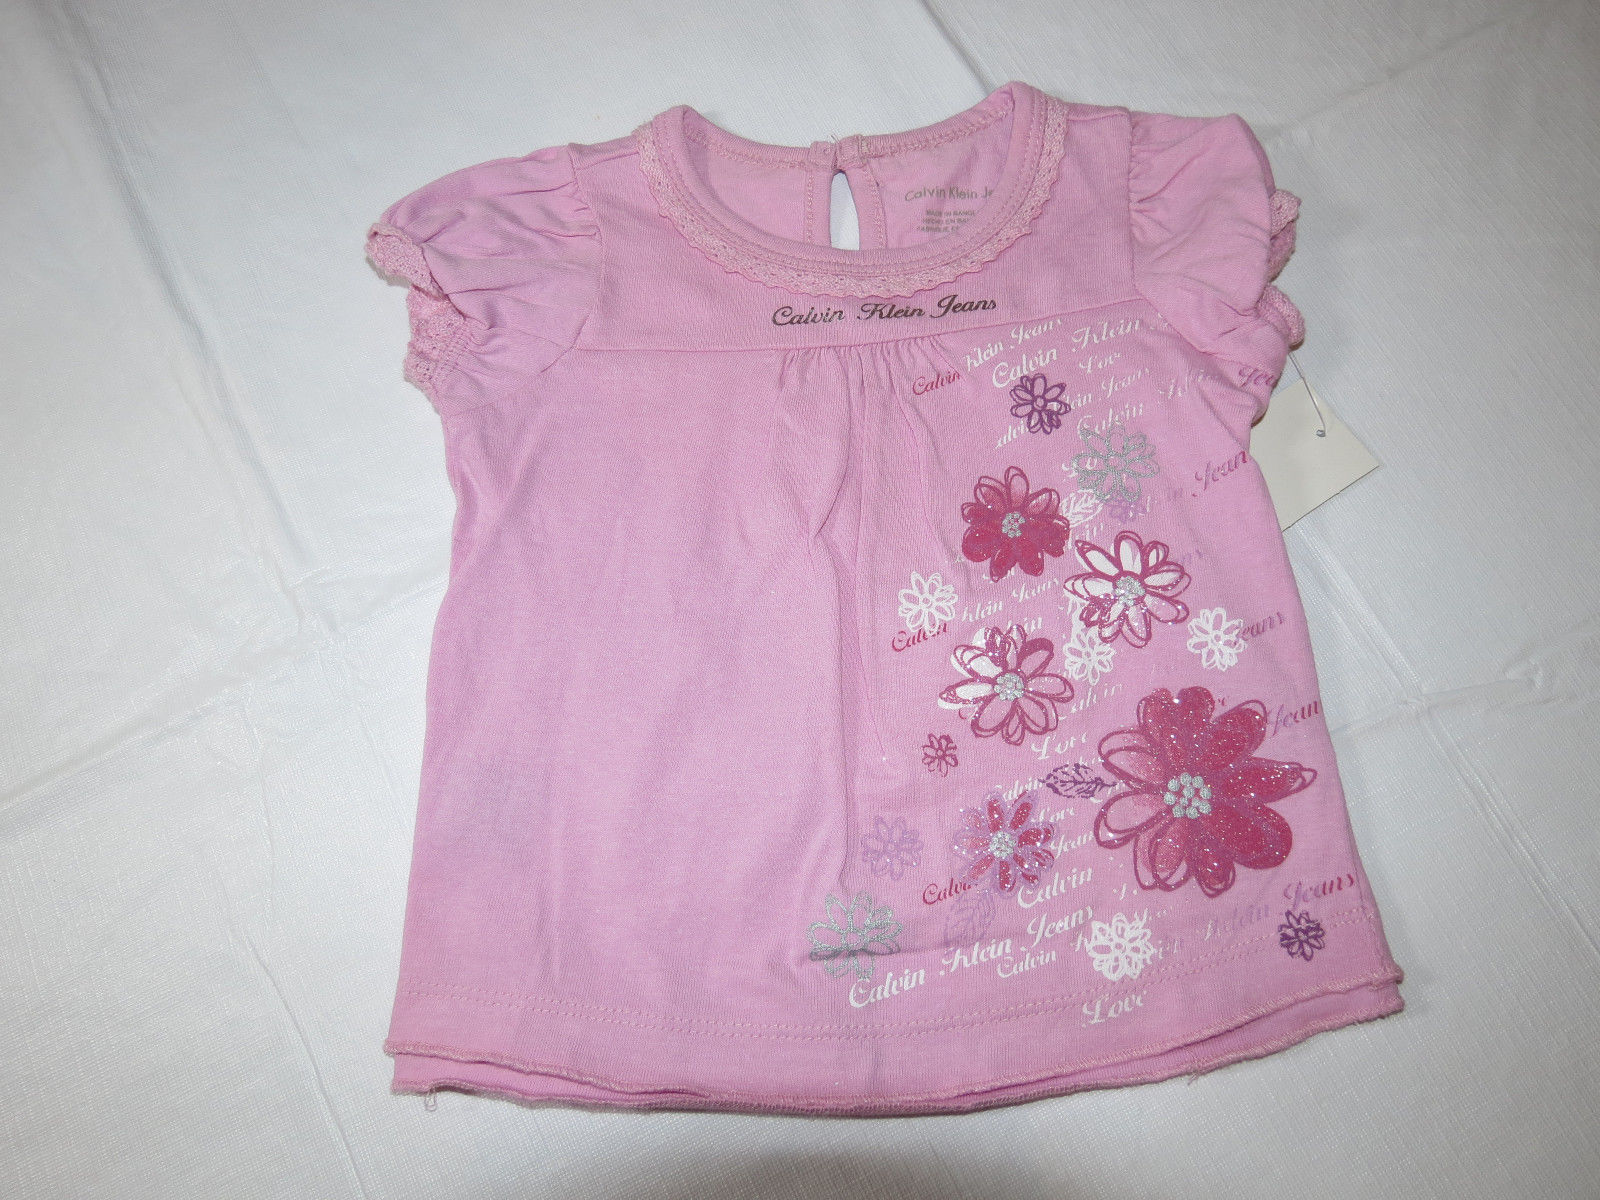 Calvin Klein baby girls 3 PC dress leggings Pink & denim 24M 3703091-99 NWT^^